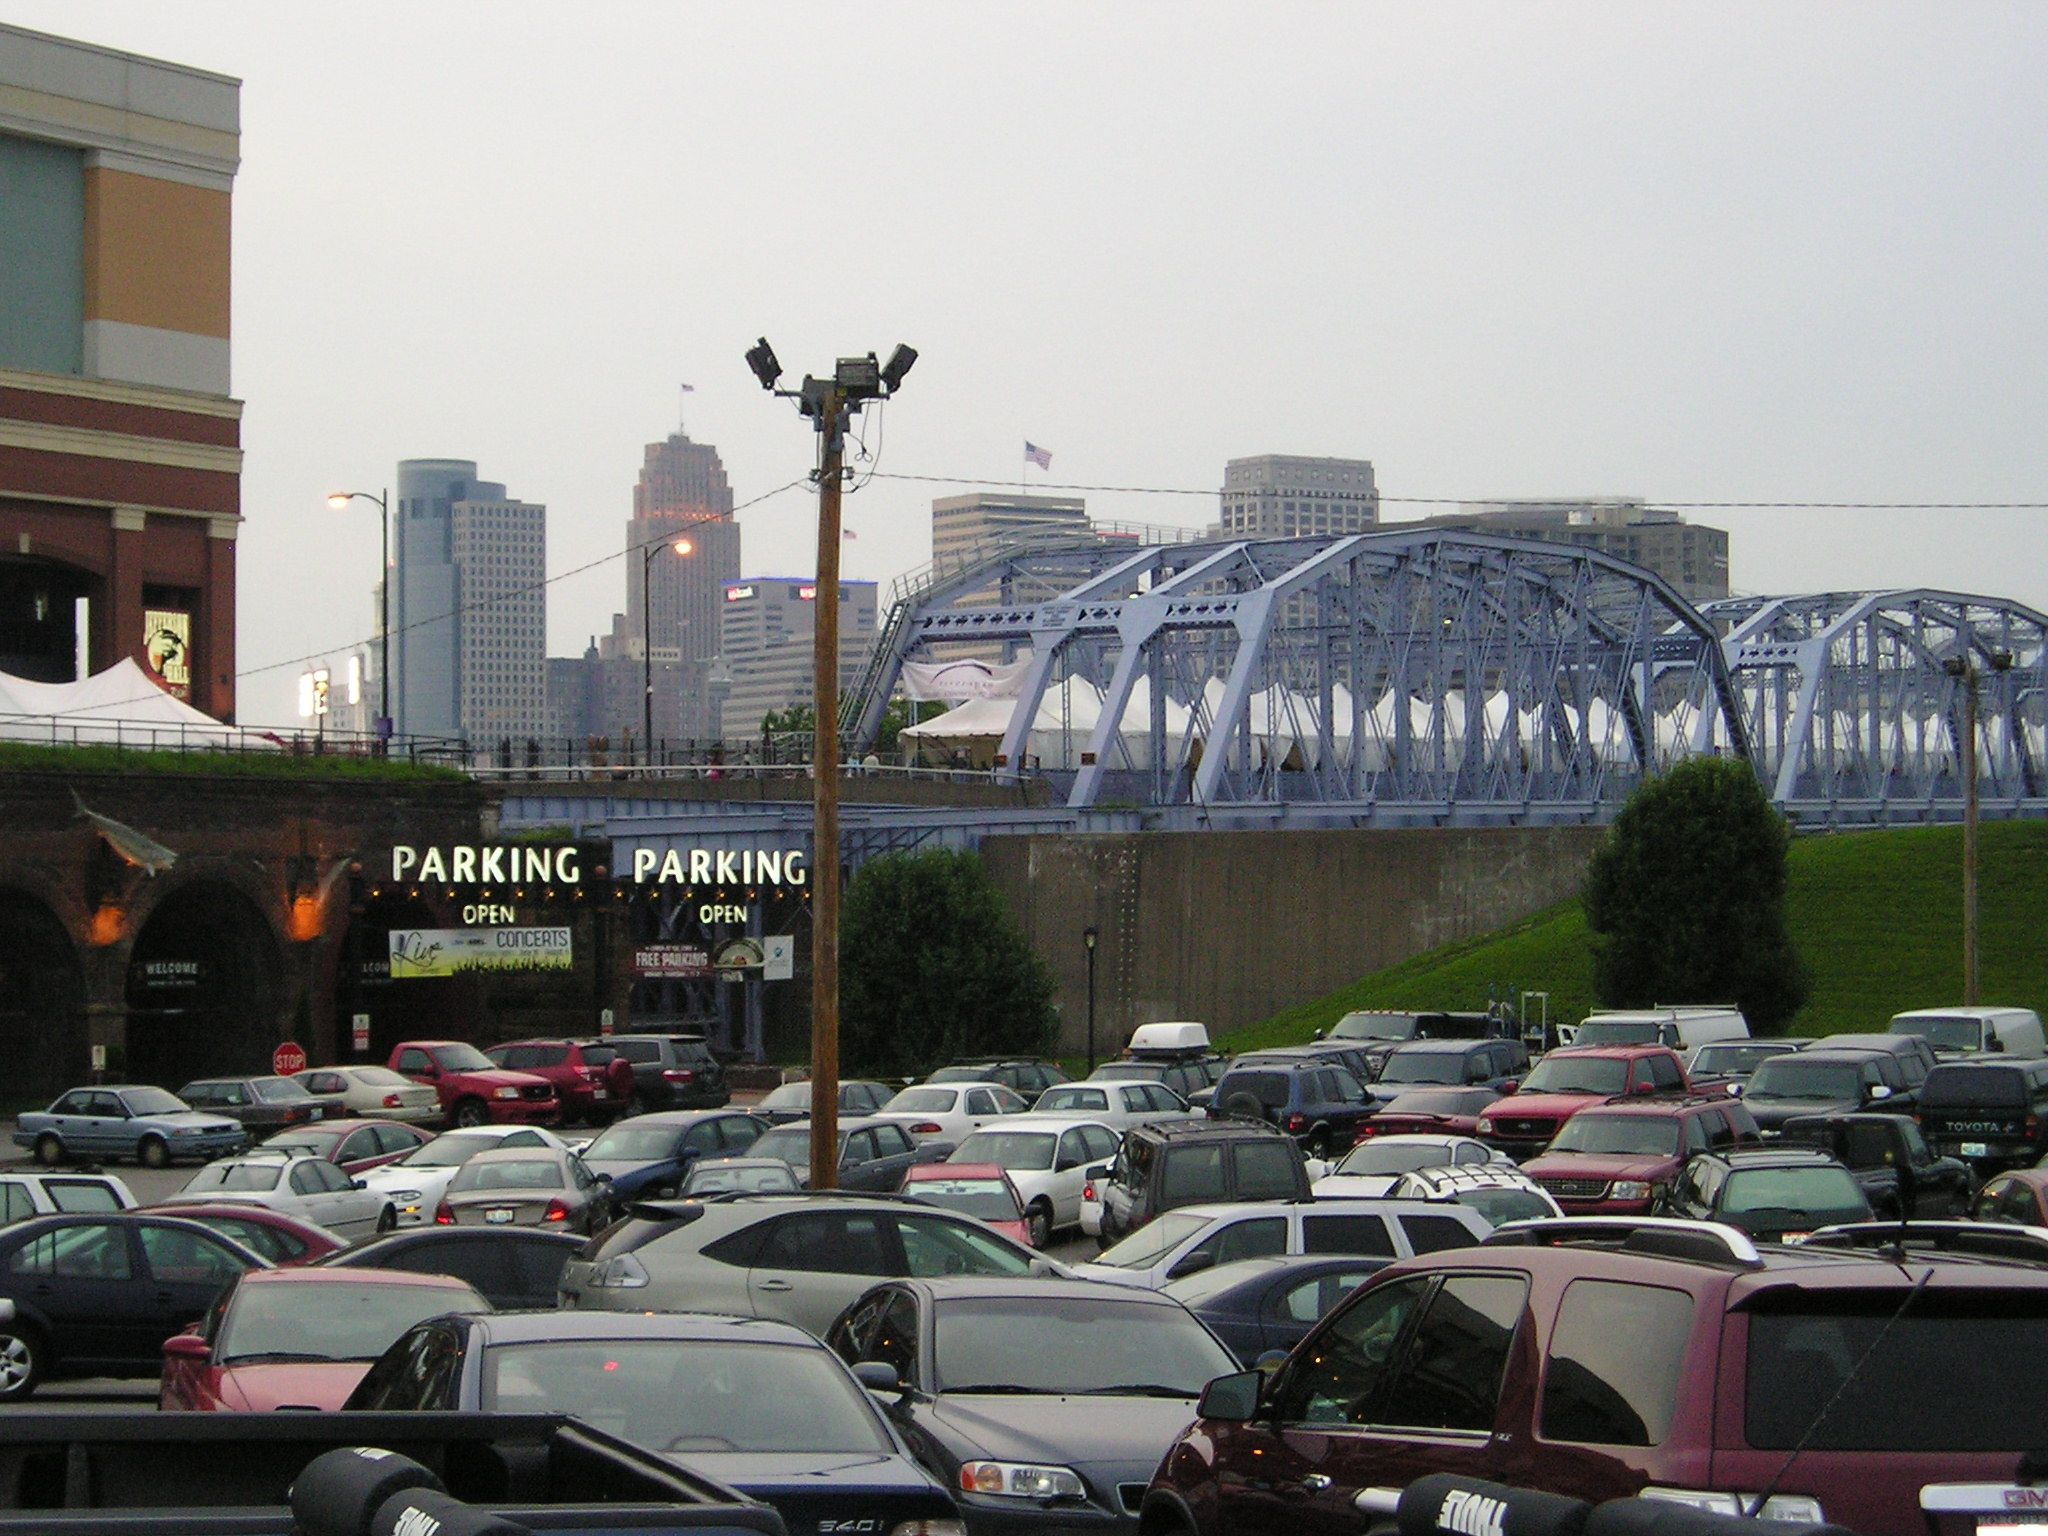 OHIO - At first, this picture of Cincinnati looks ordinary, but take a closer look.  I like the flag in the distance on top of the building.  I think it's also ironic to note the Open Parking signs in a sea of parked cars!